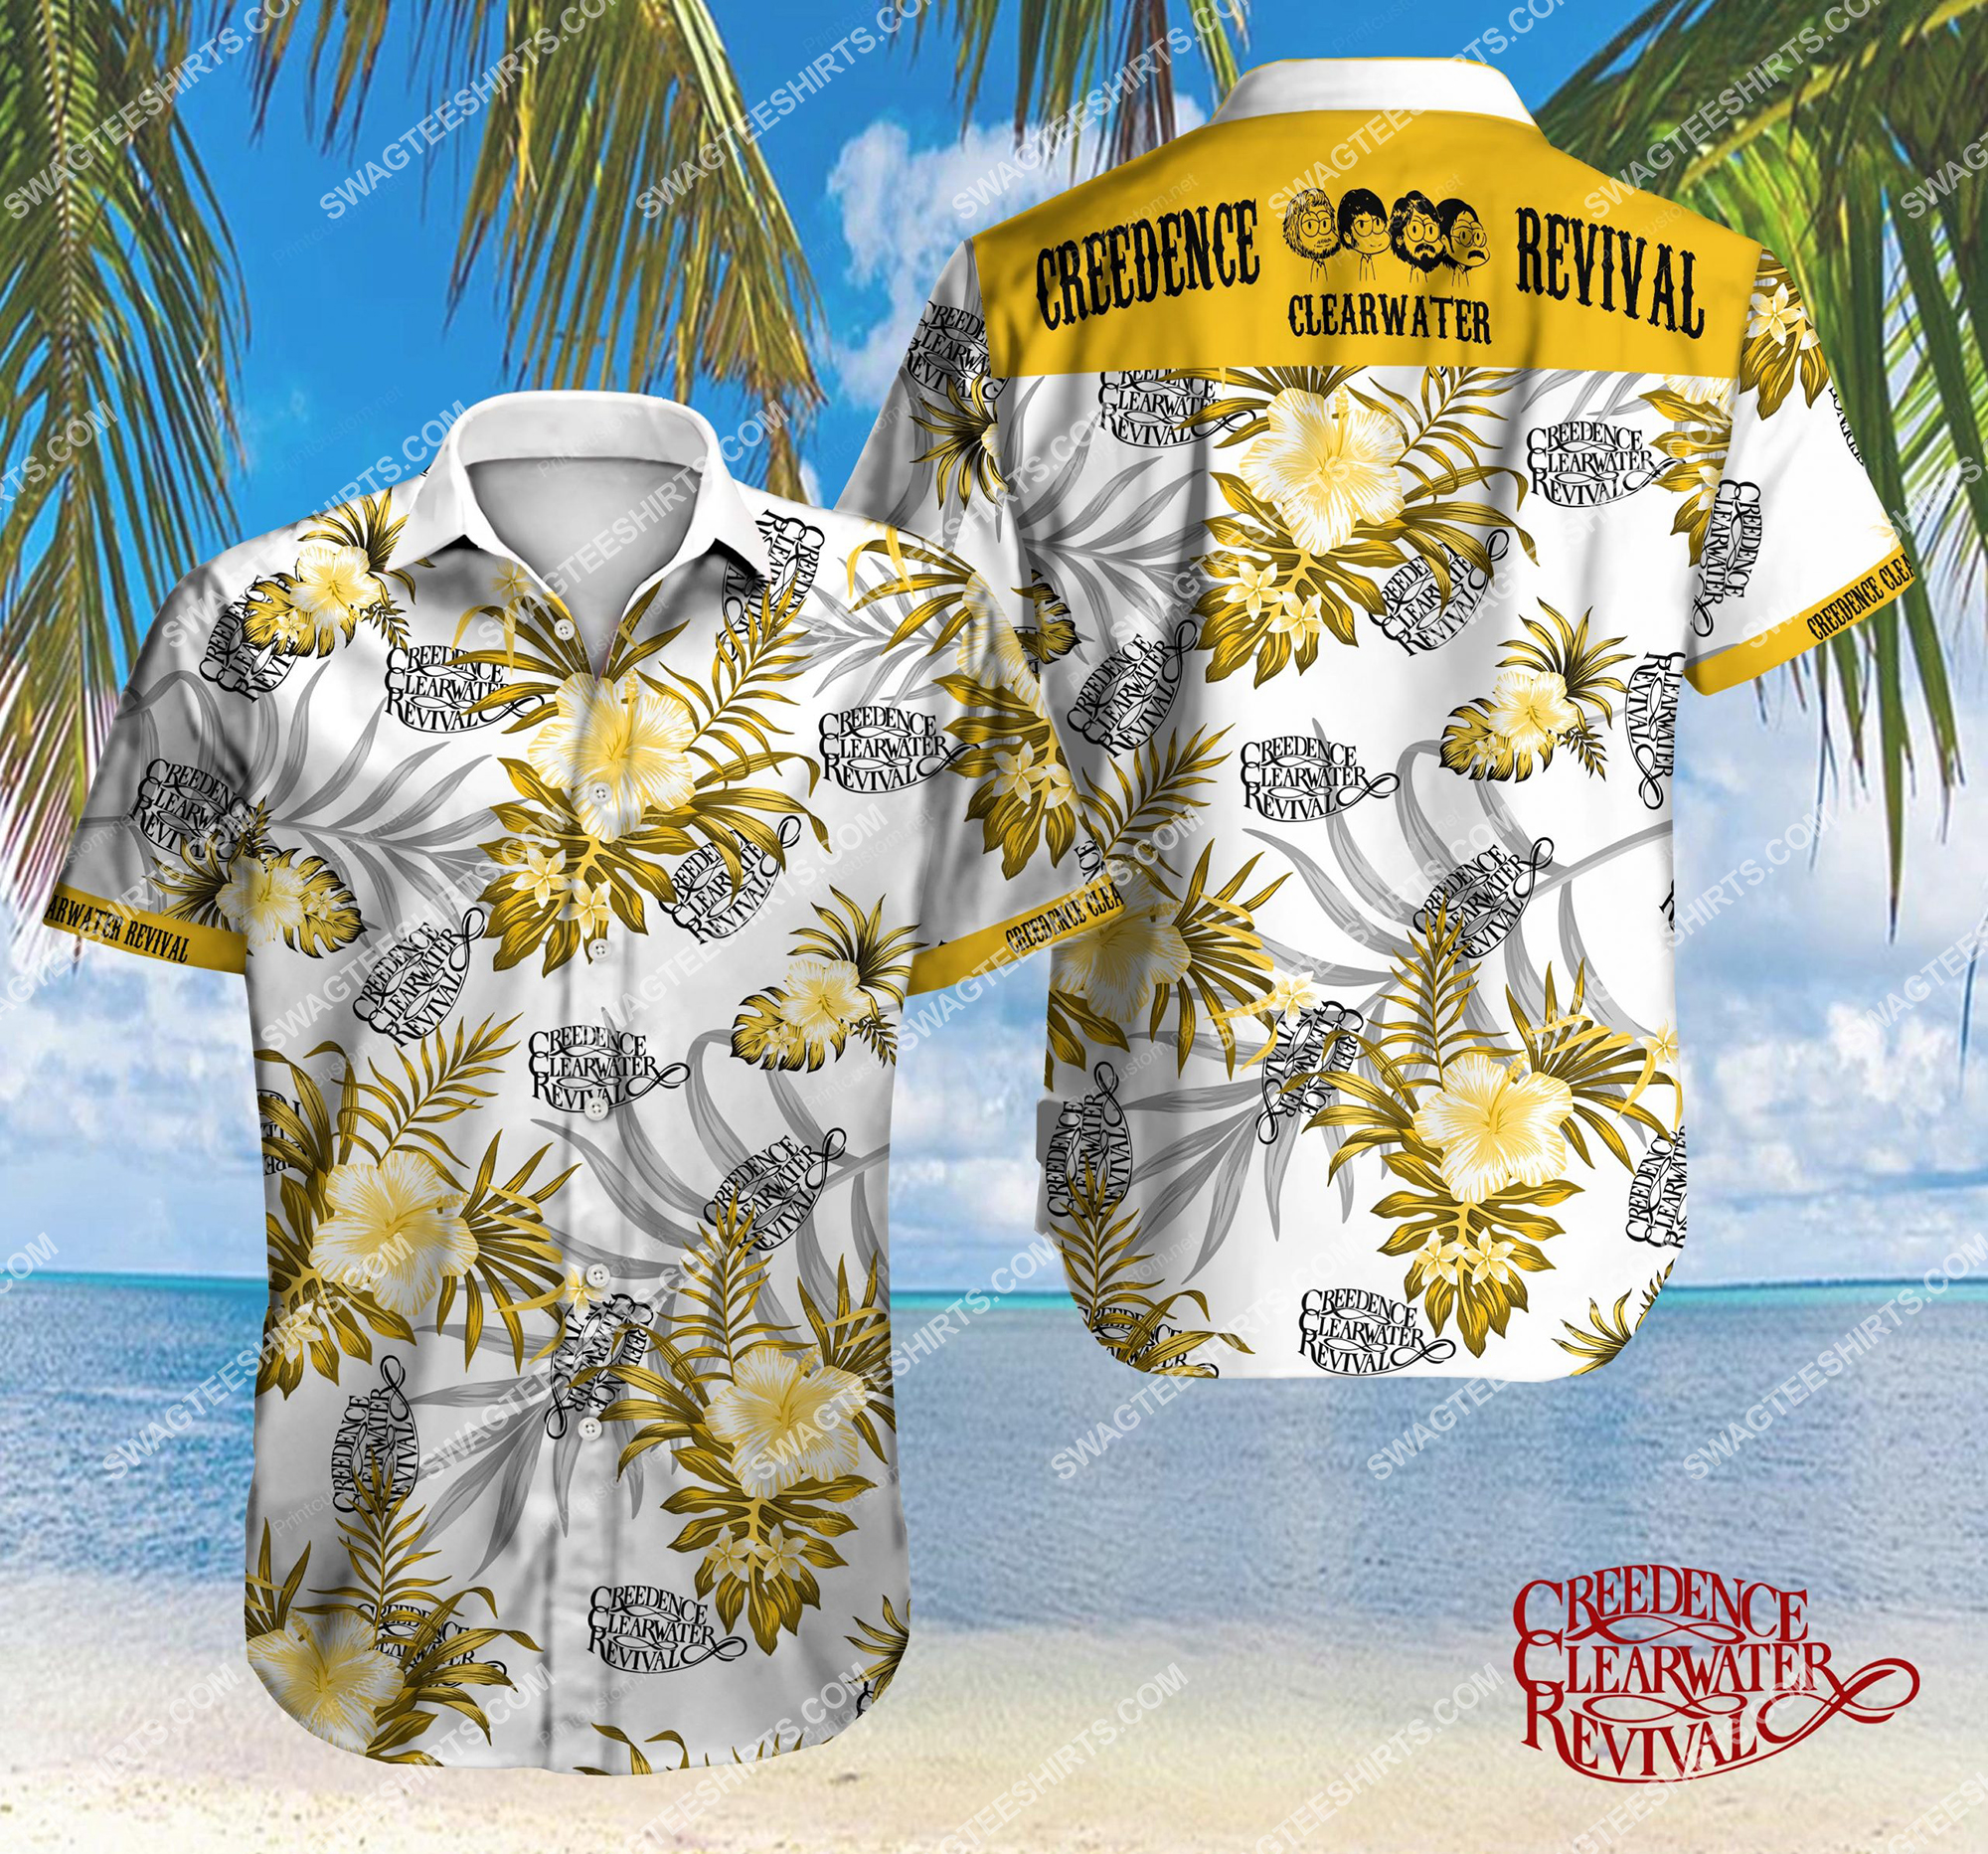 the creedence clearwater revival full printing hawaiian shirt 2 - Copy (2)